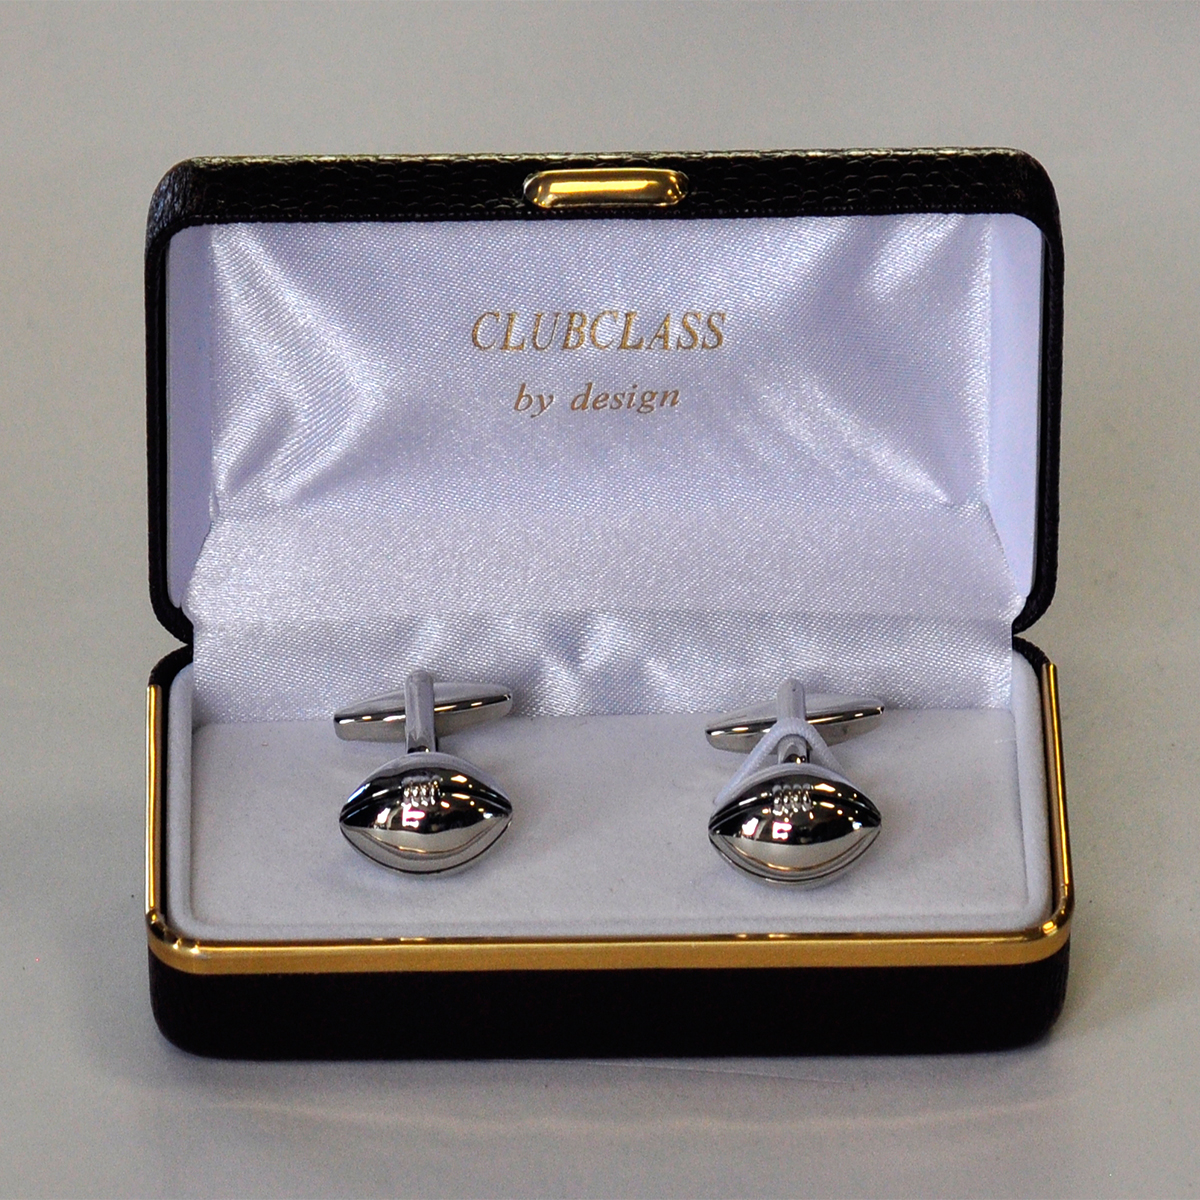 Rugby Ball Cufflinks - €35.00